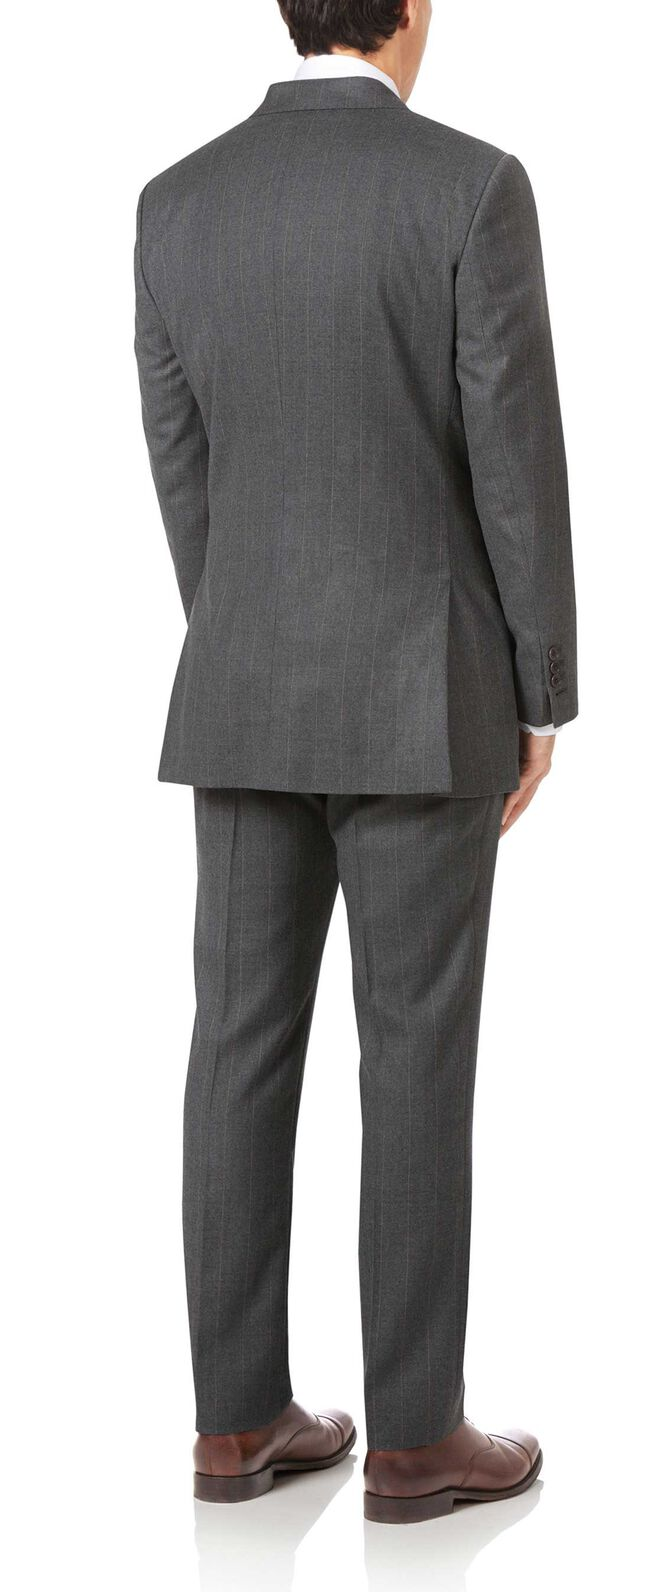 Charcoal slim fit British serge tan stripe luxury suit